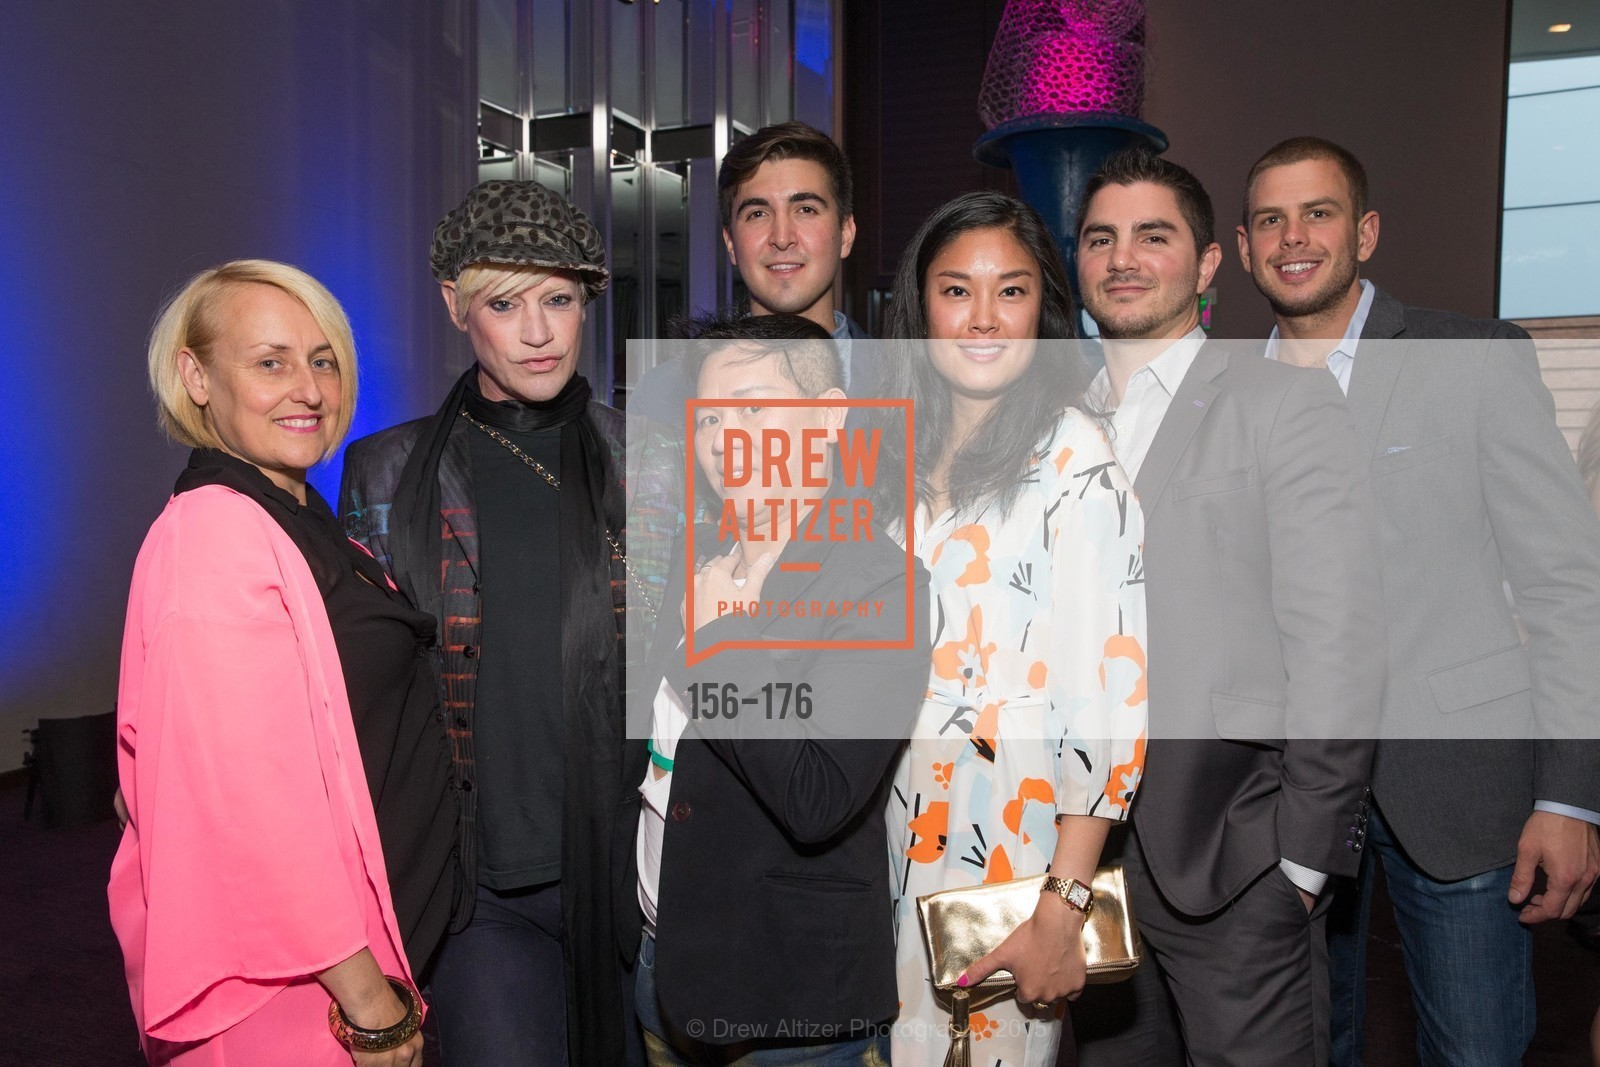 Felicia Simon, Richie Rich, Baby Chic, Davey Silva, Diana Guo, Michael Gregg, Mark Bowen, VIP Pride Celebration 2015, St. Regis, June 18th, 2015,Drew Altizer, Drew Altizer Photography, full-service agency, private events, San Francisco photographer, photographer california